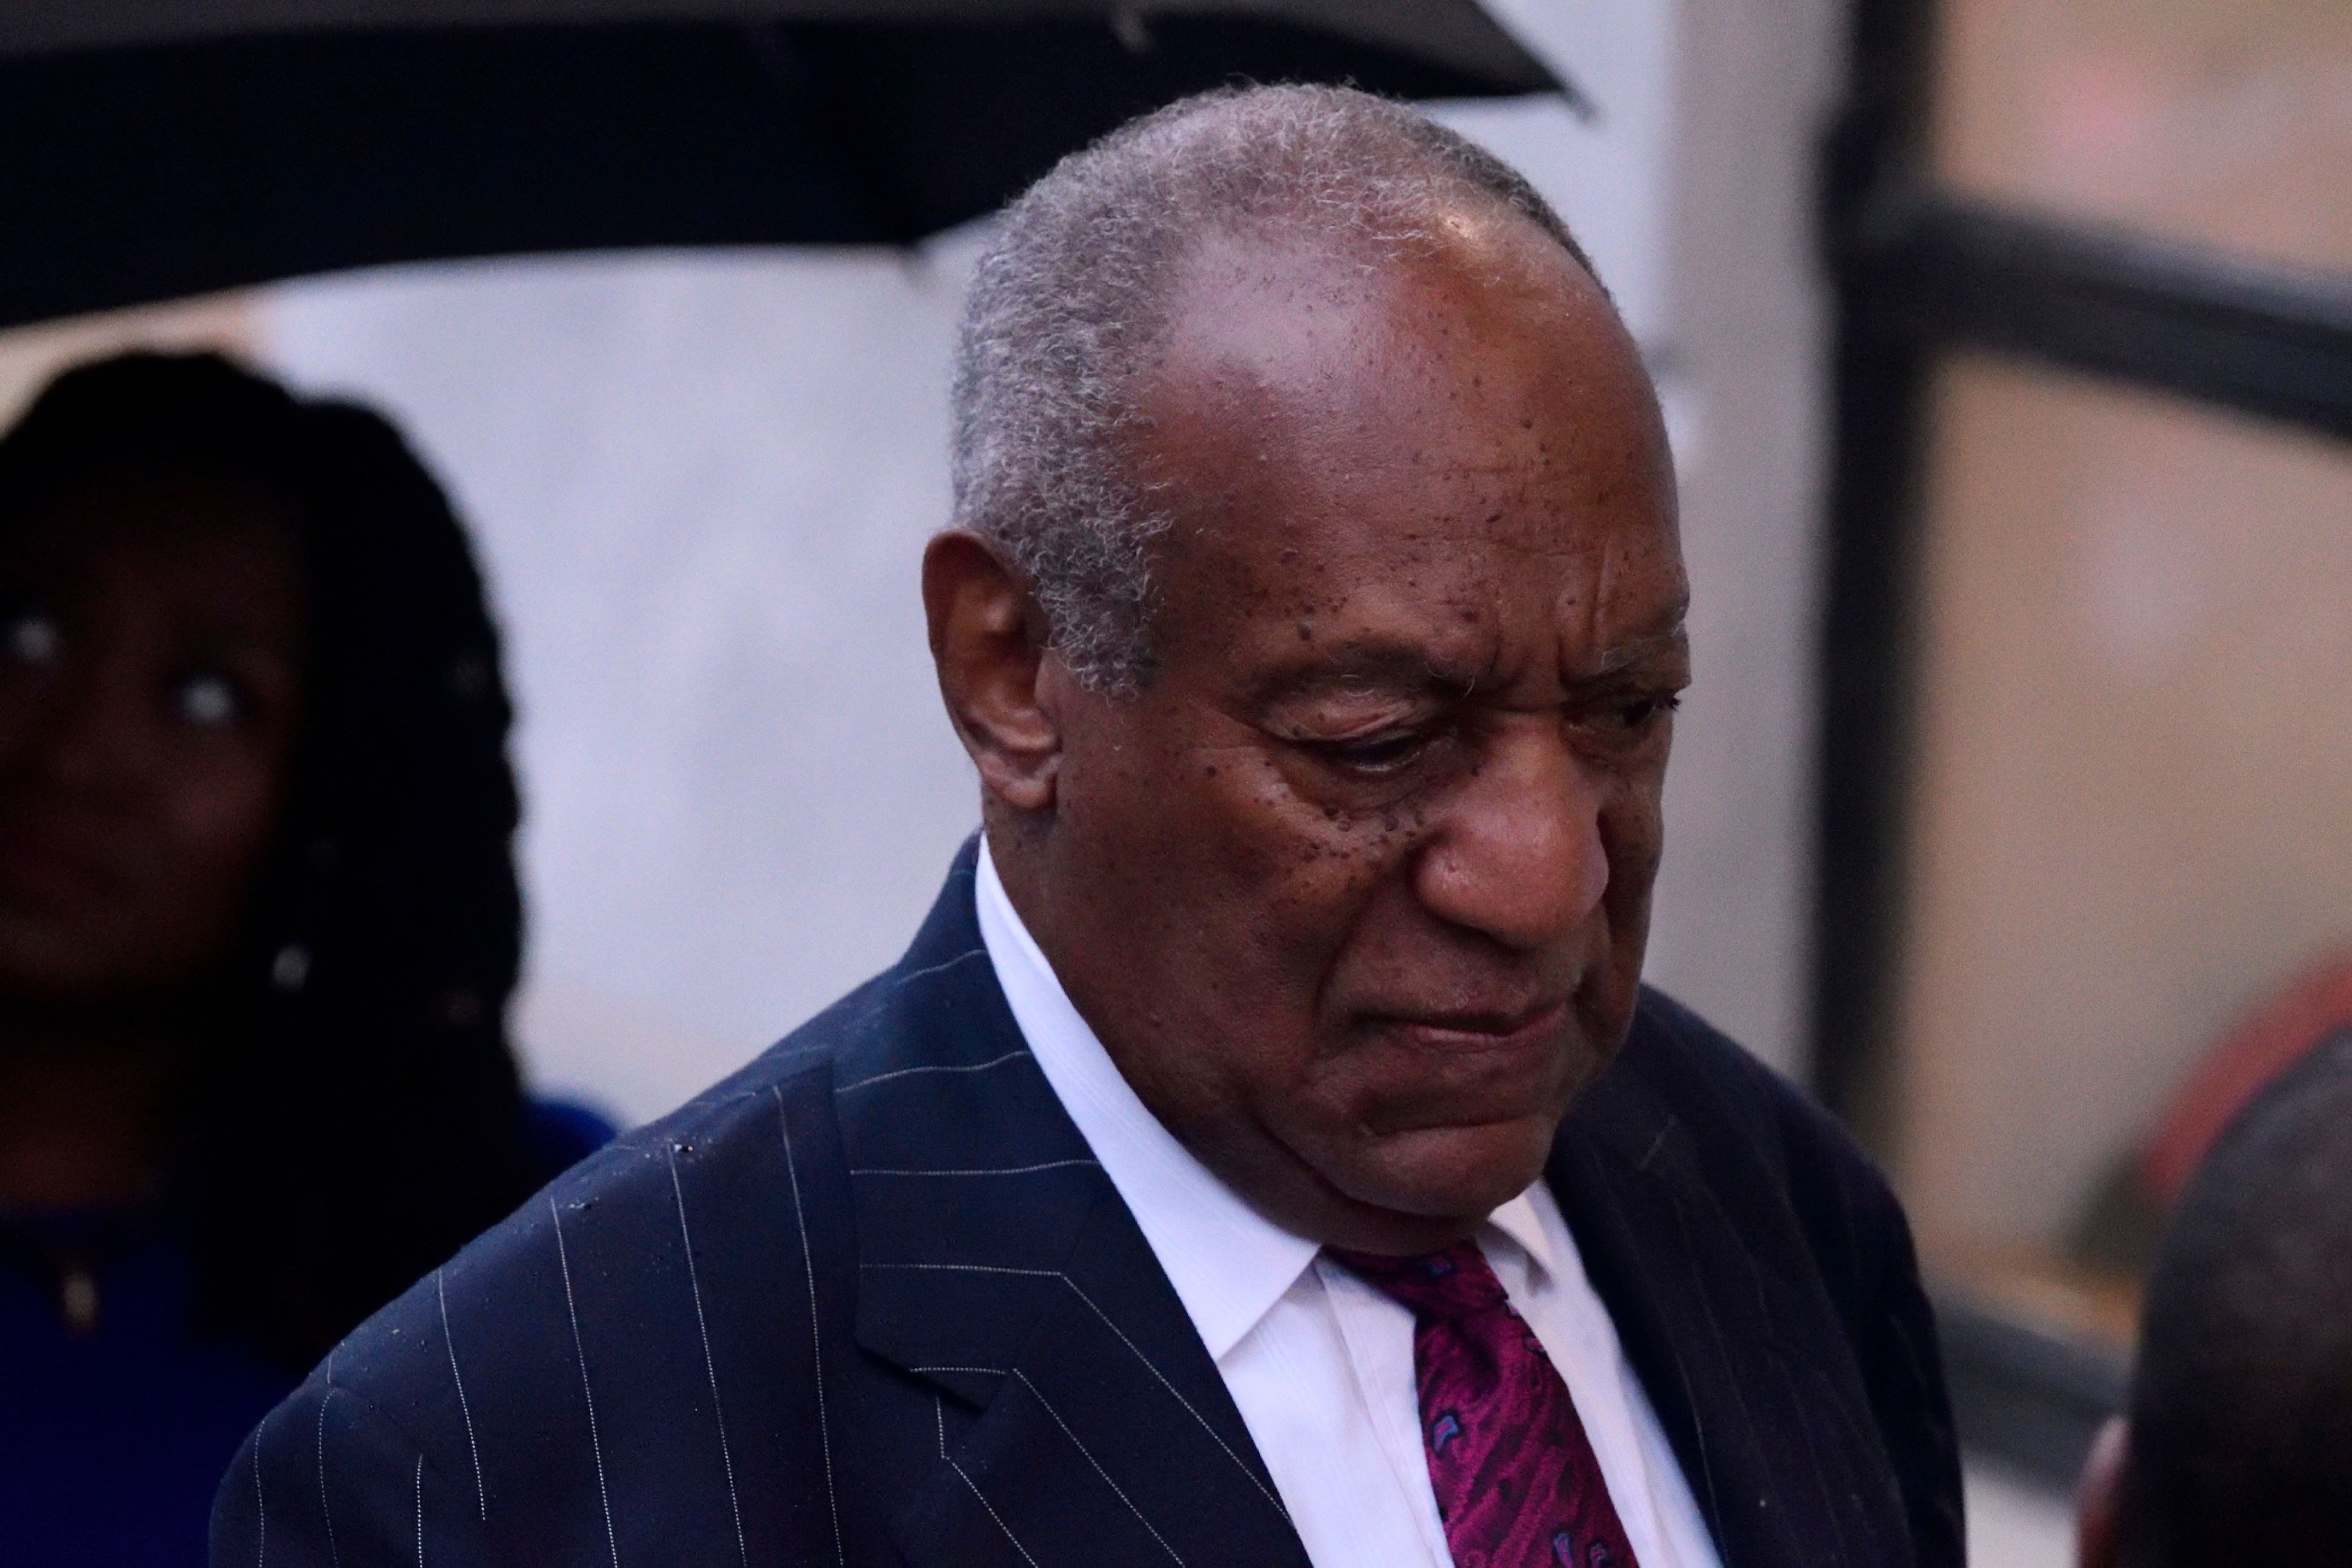 Judge Rules Bill Cosby A 'Sexually Violent